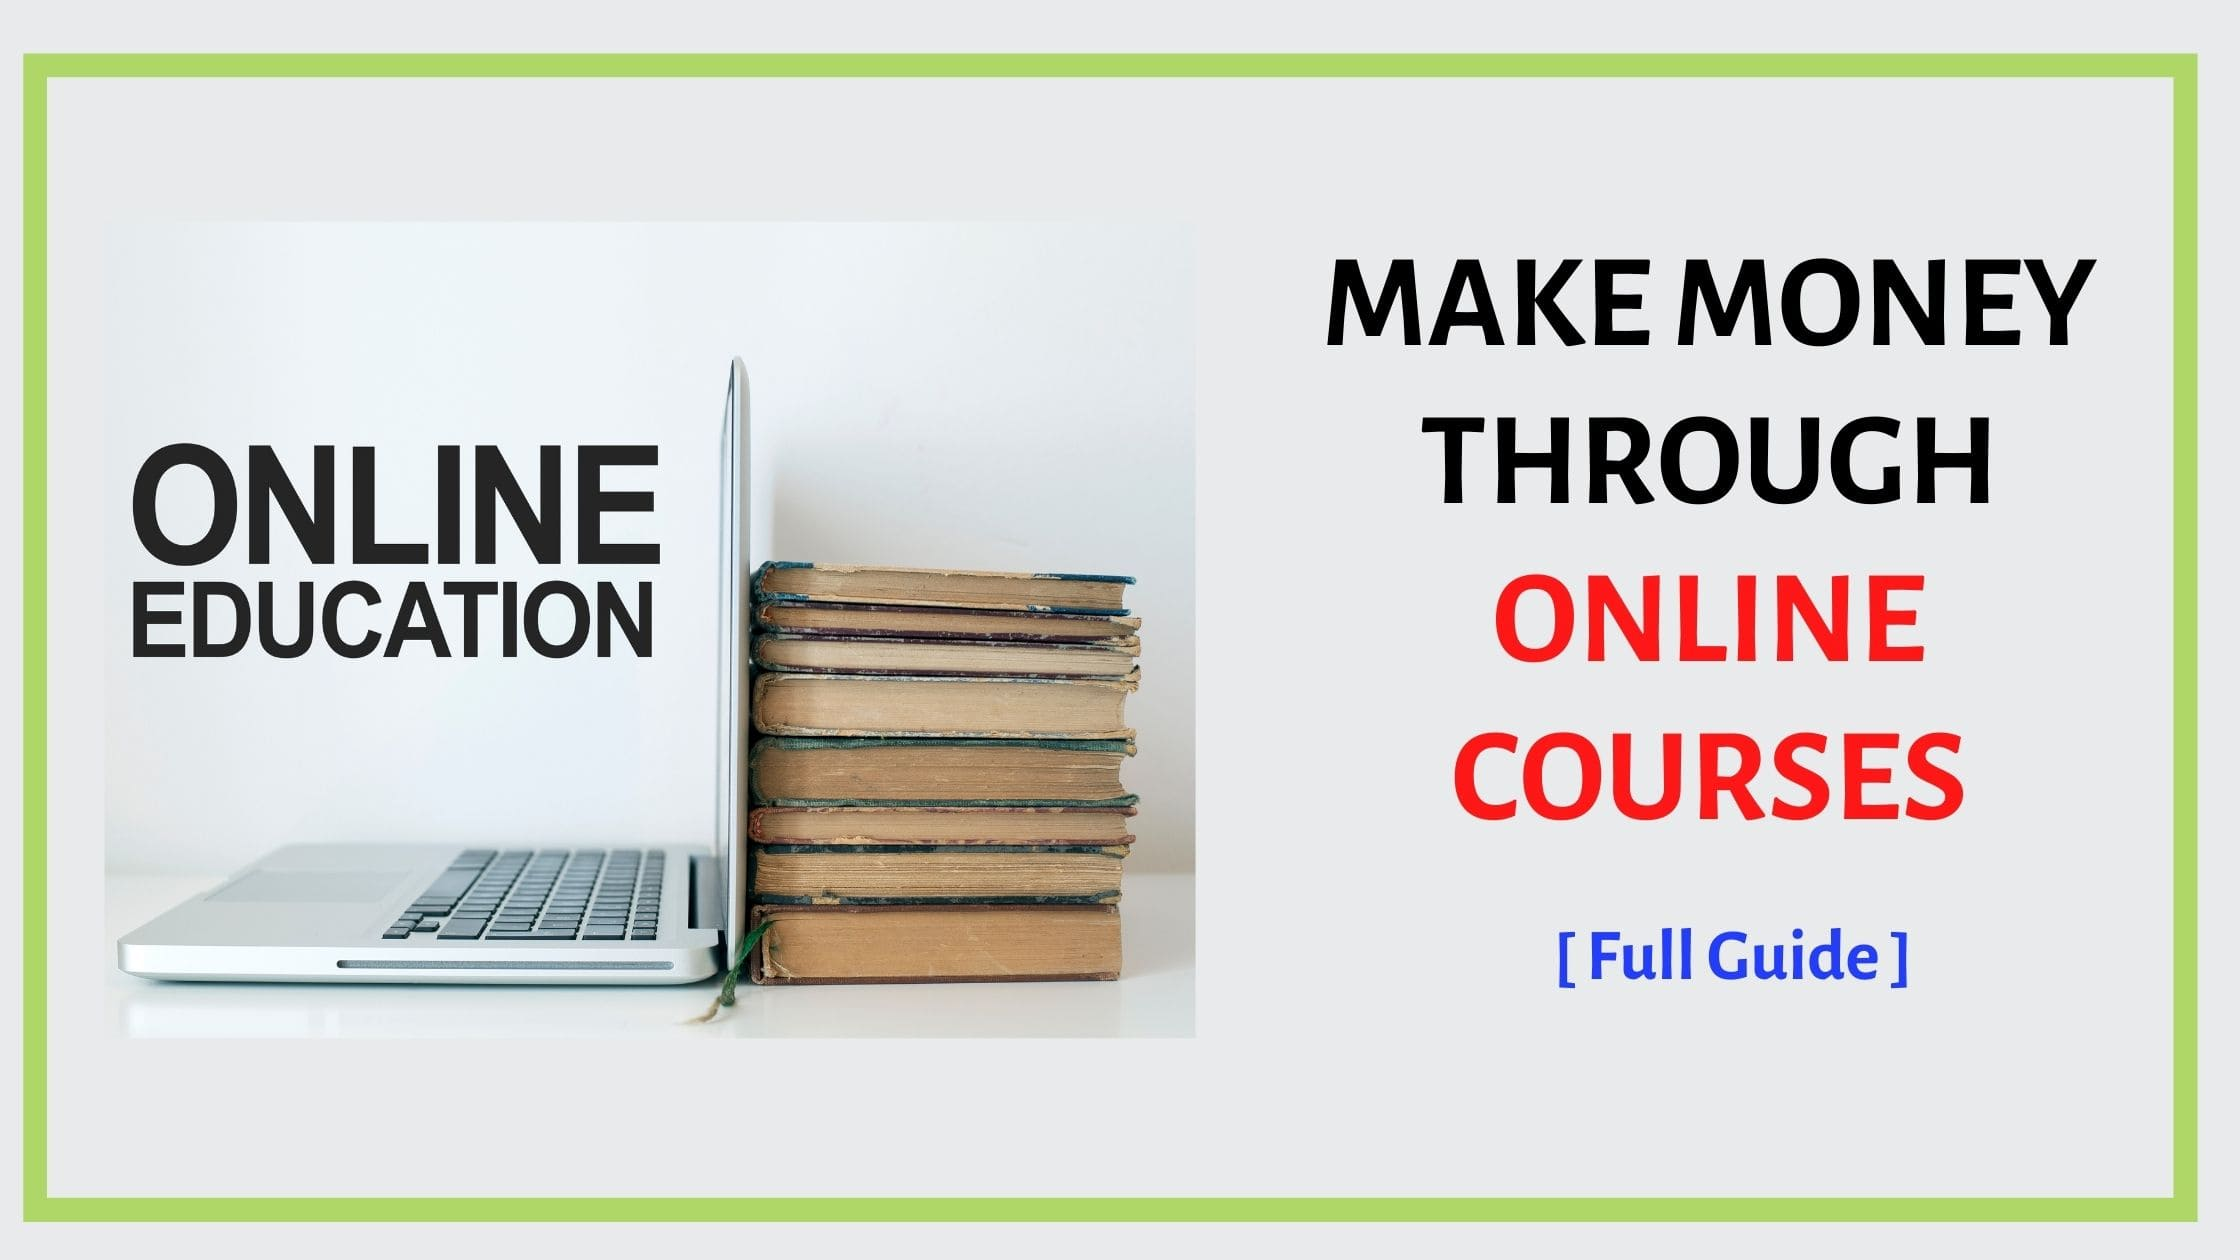 make money through online courses